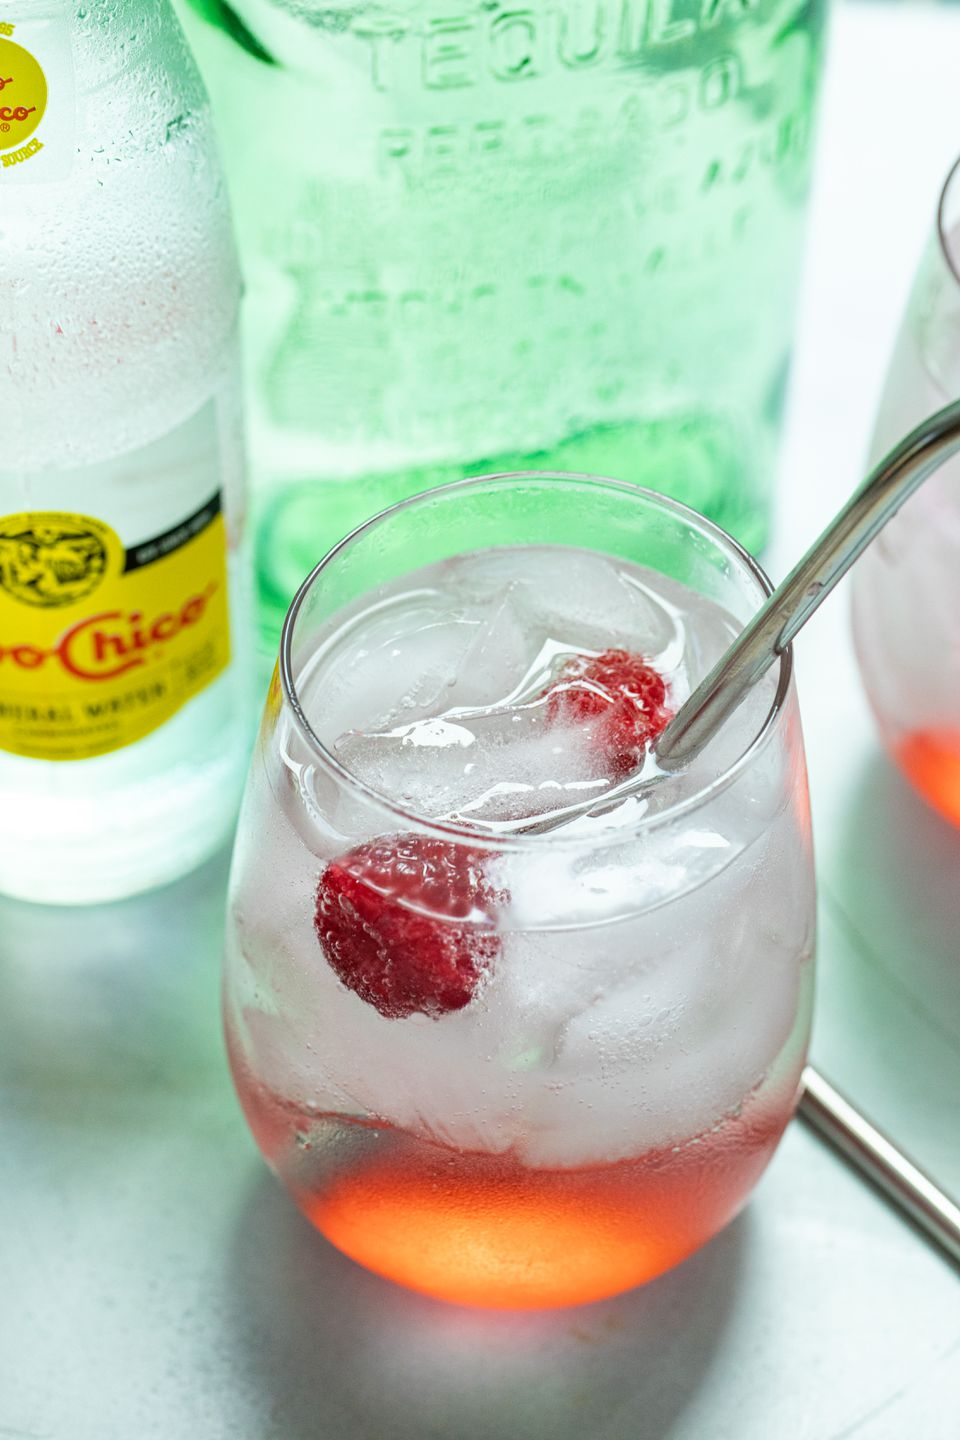 The best Texas ranch water with raspberries in a glass with a straw.